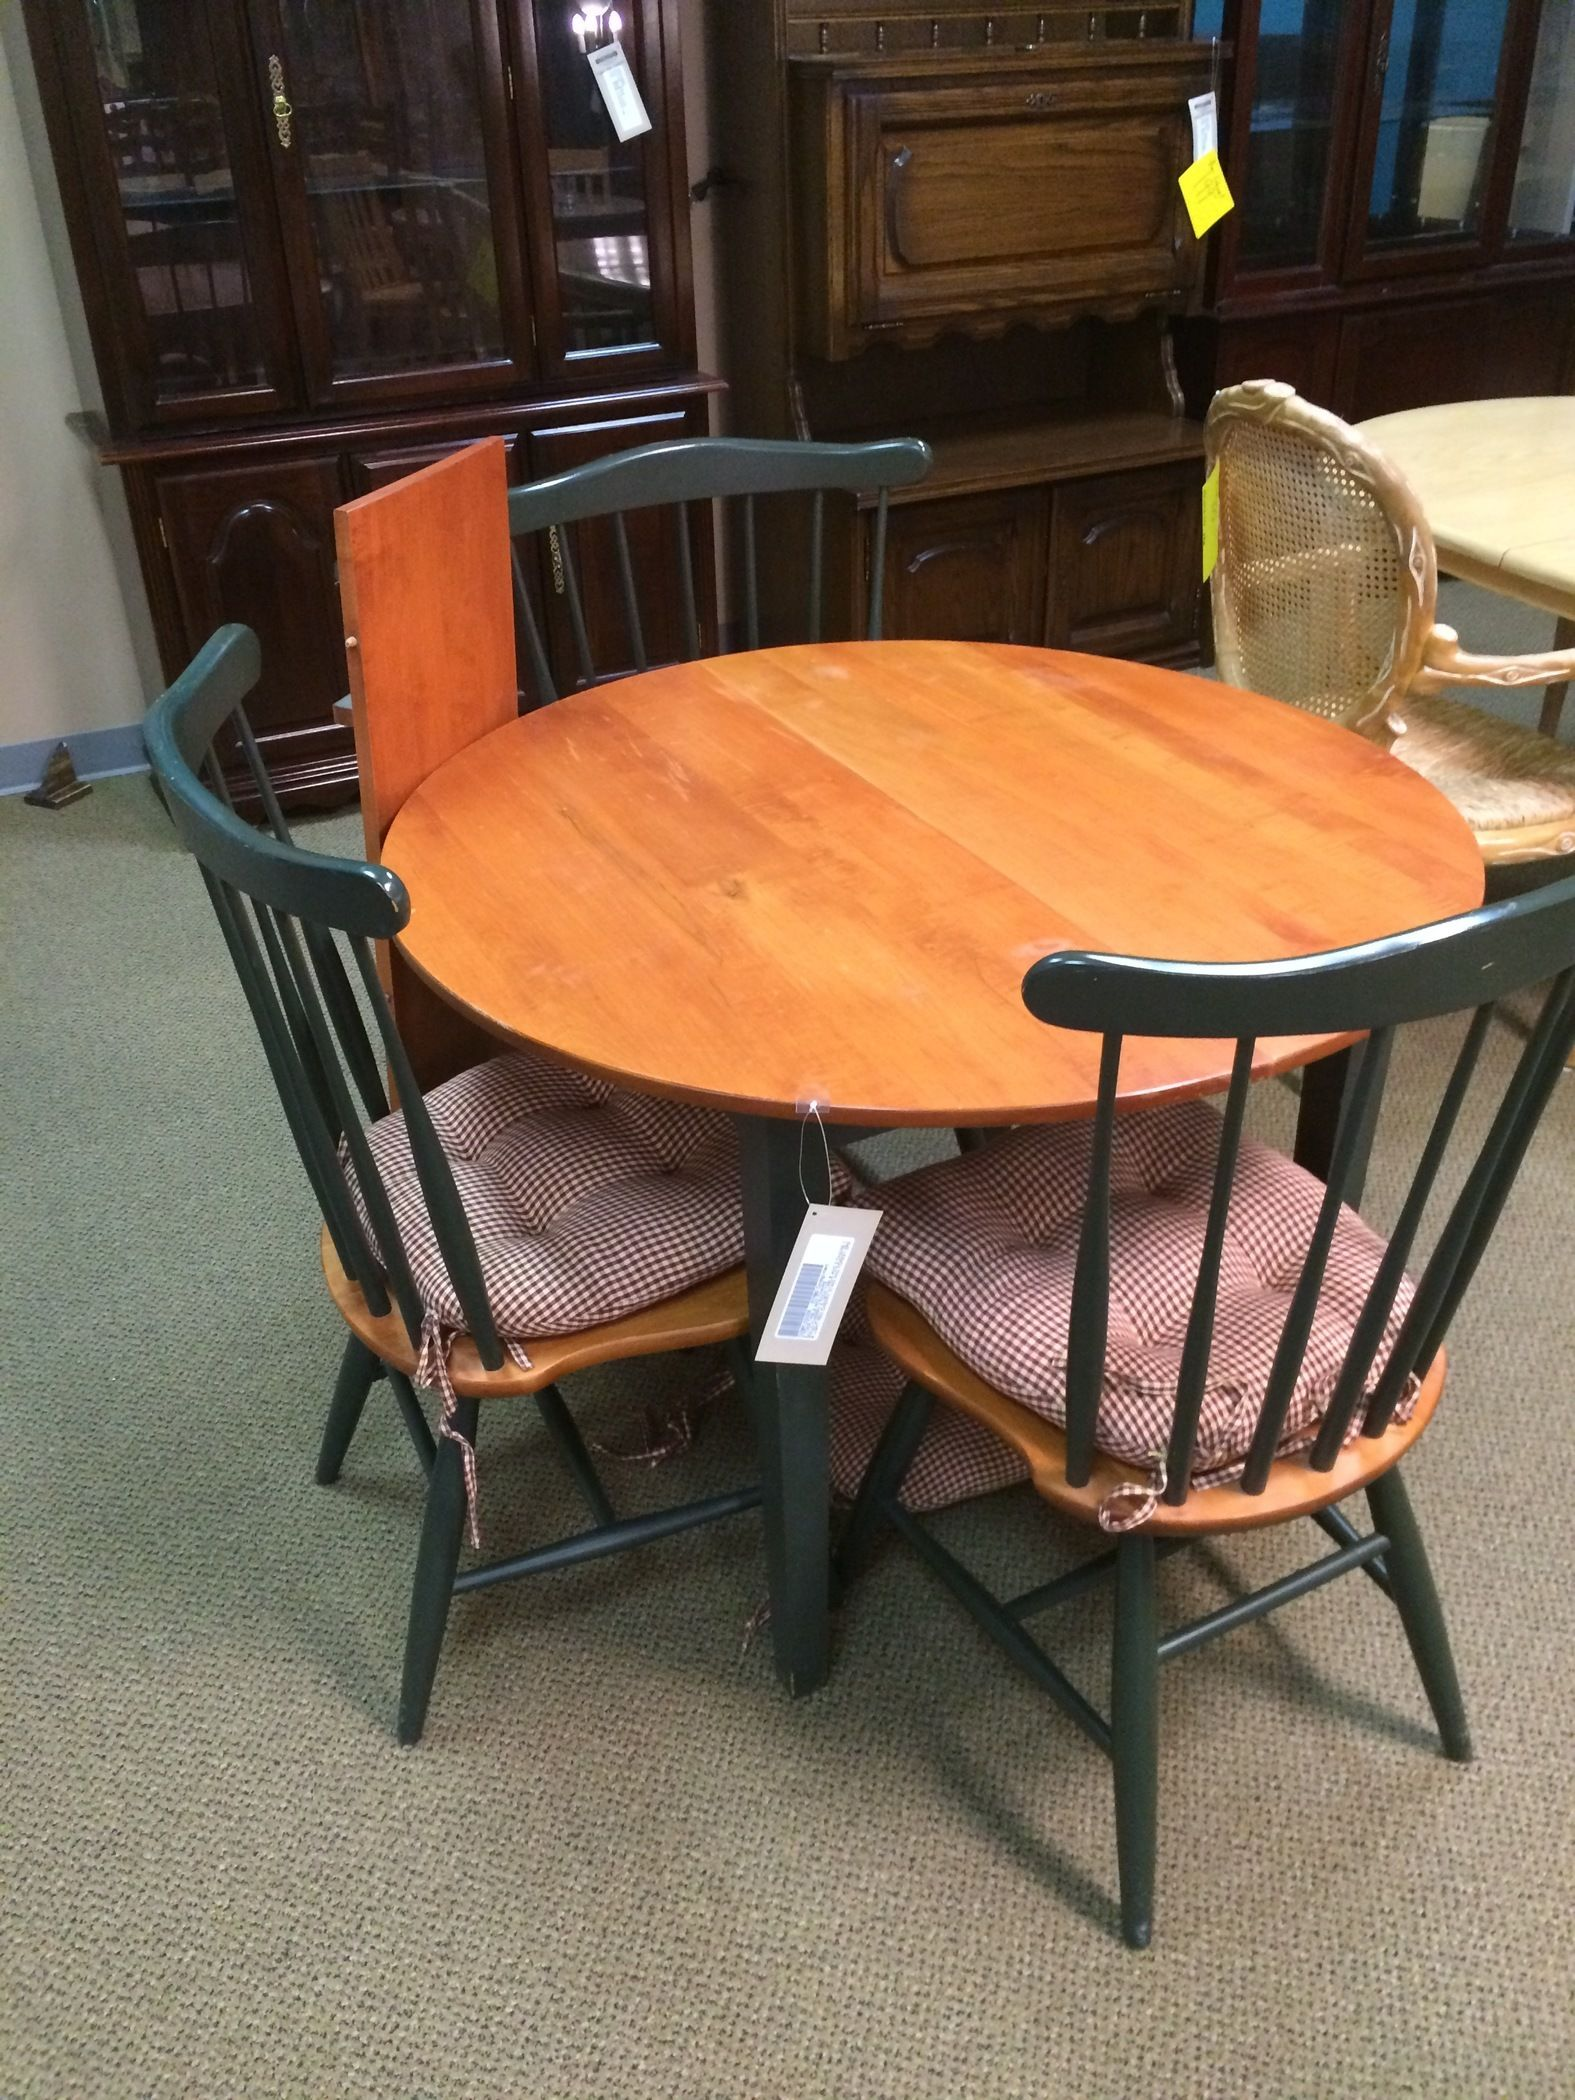 2 Tone Table And Chairs Allegheny Furniture Consignment